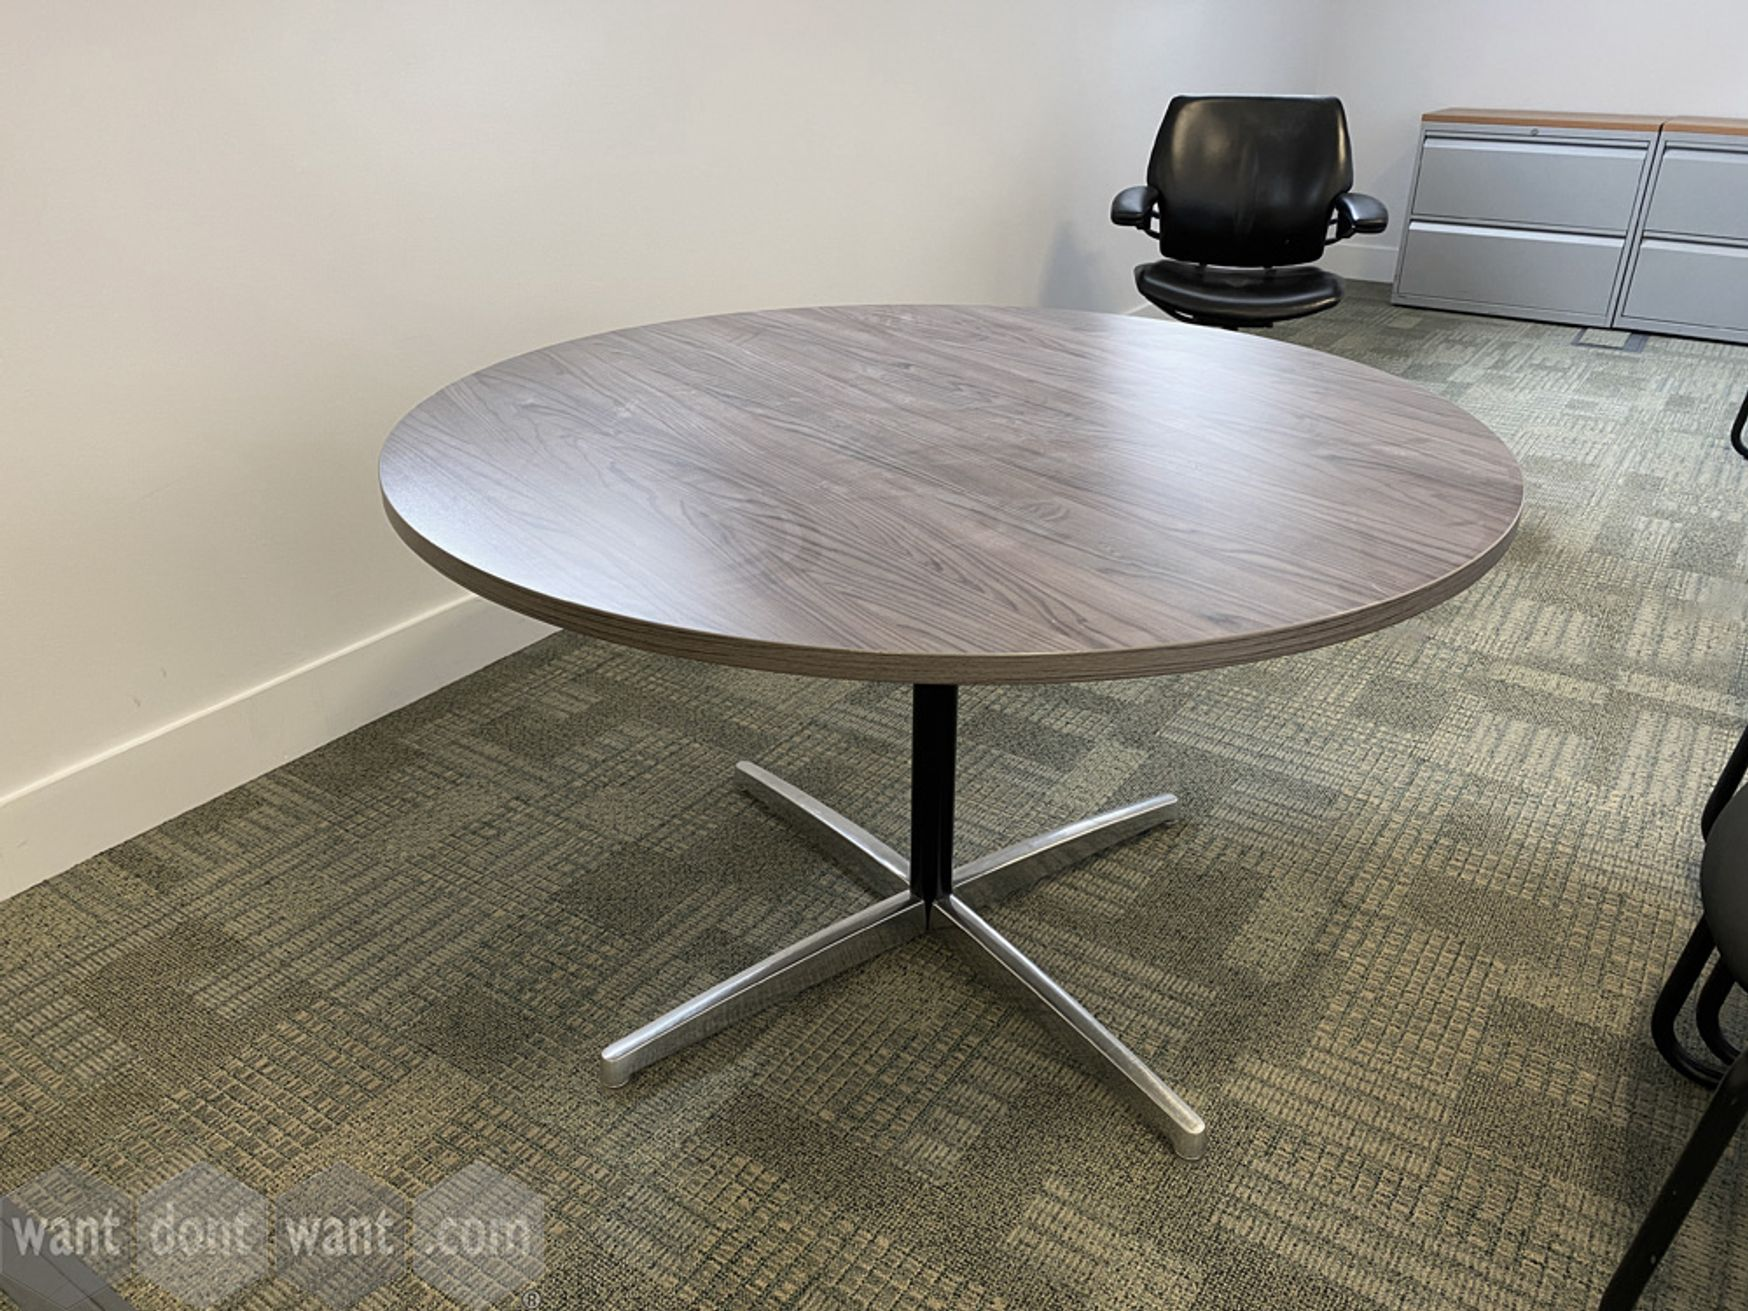 Used circular meeting tables (1200mm dia) with walnut MFC tops